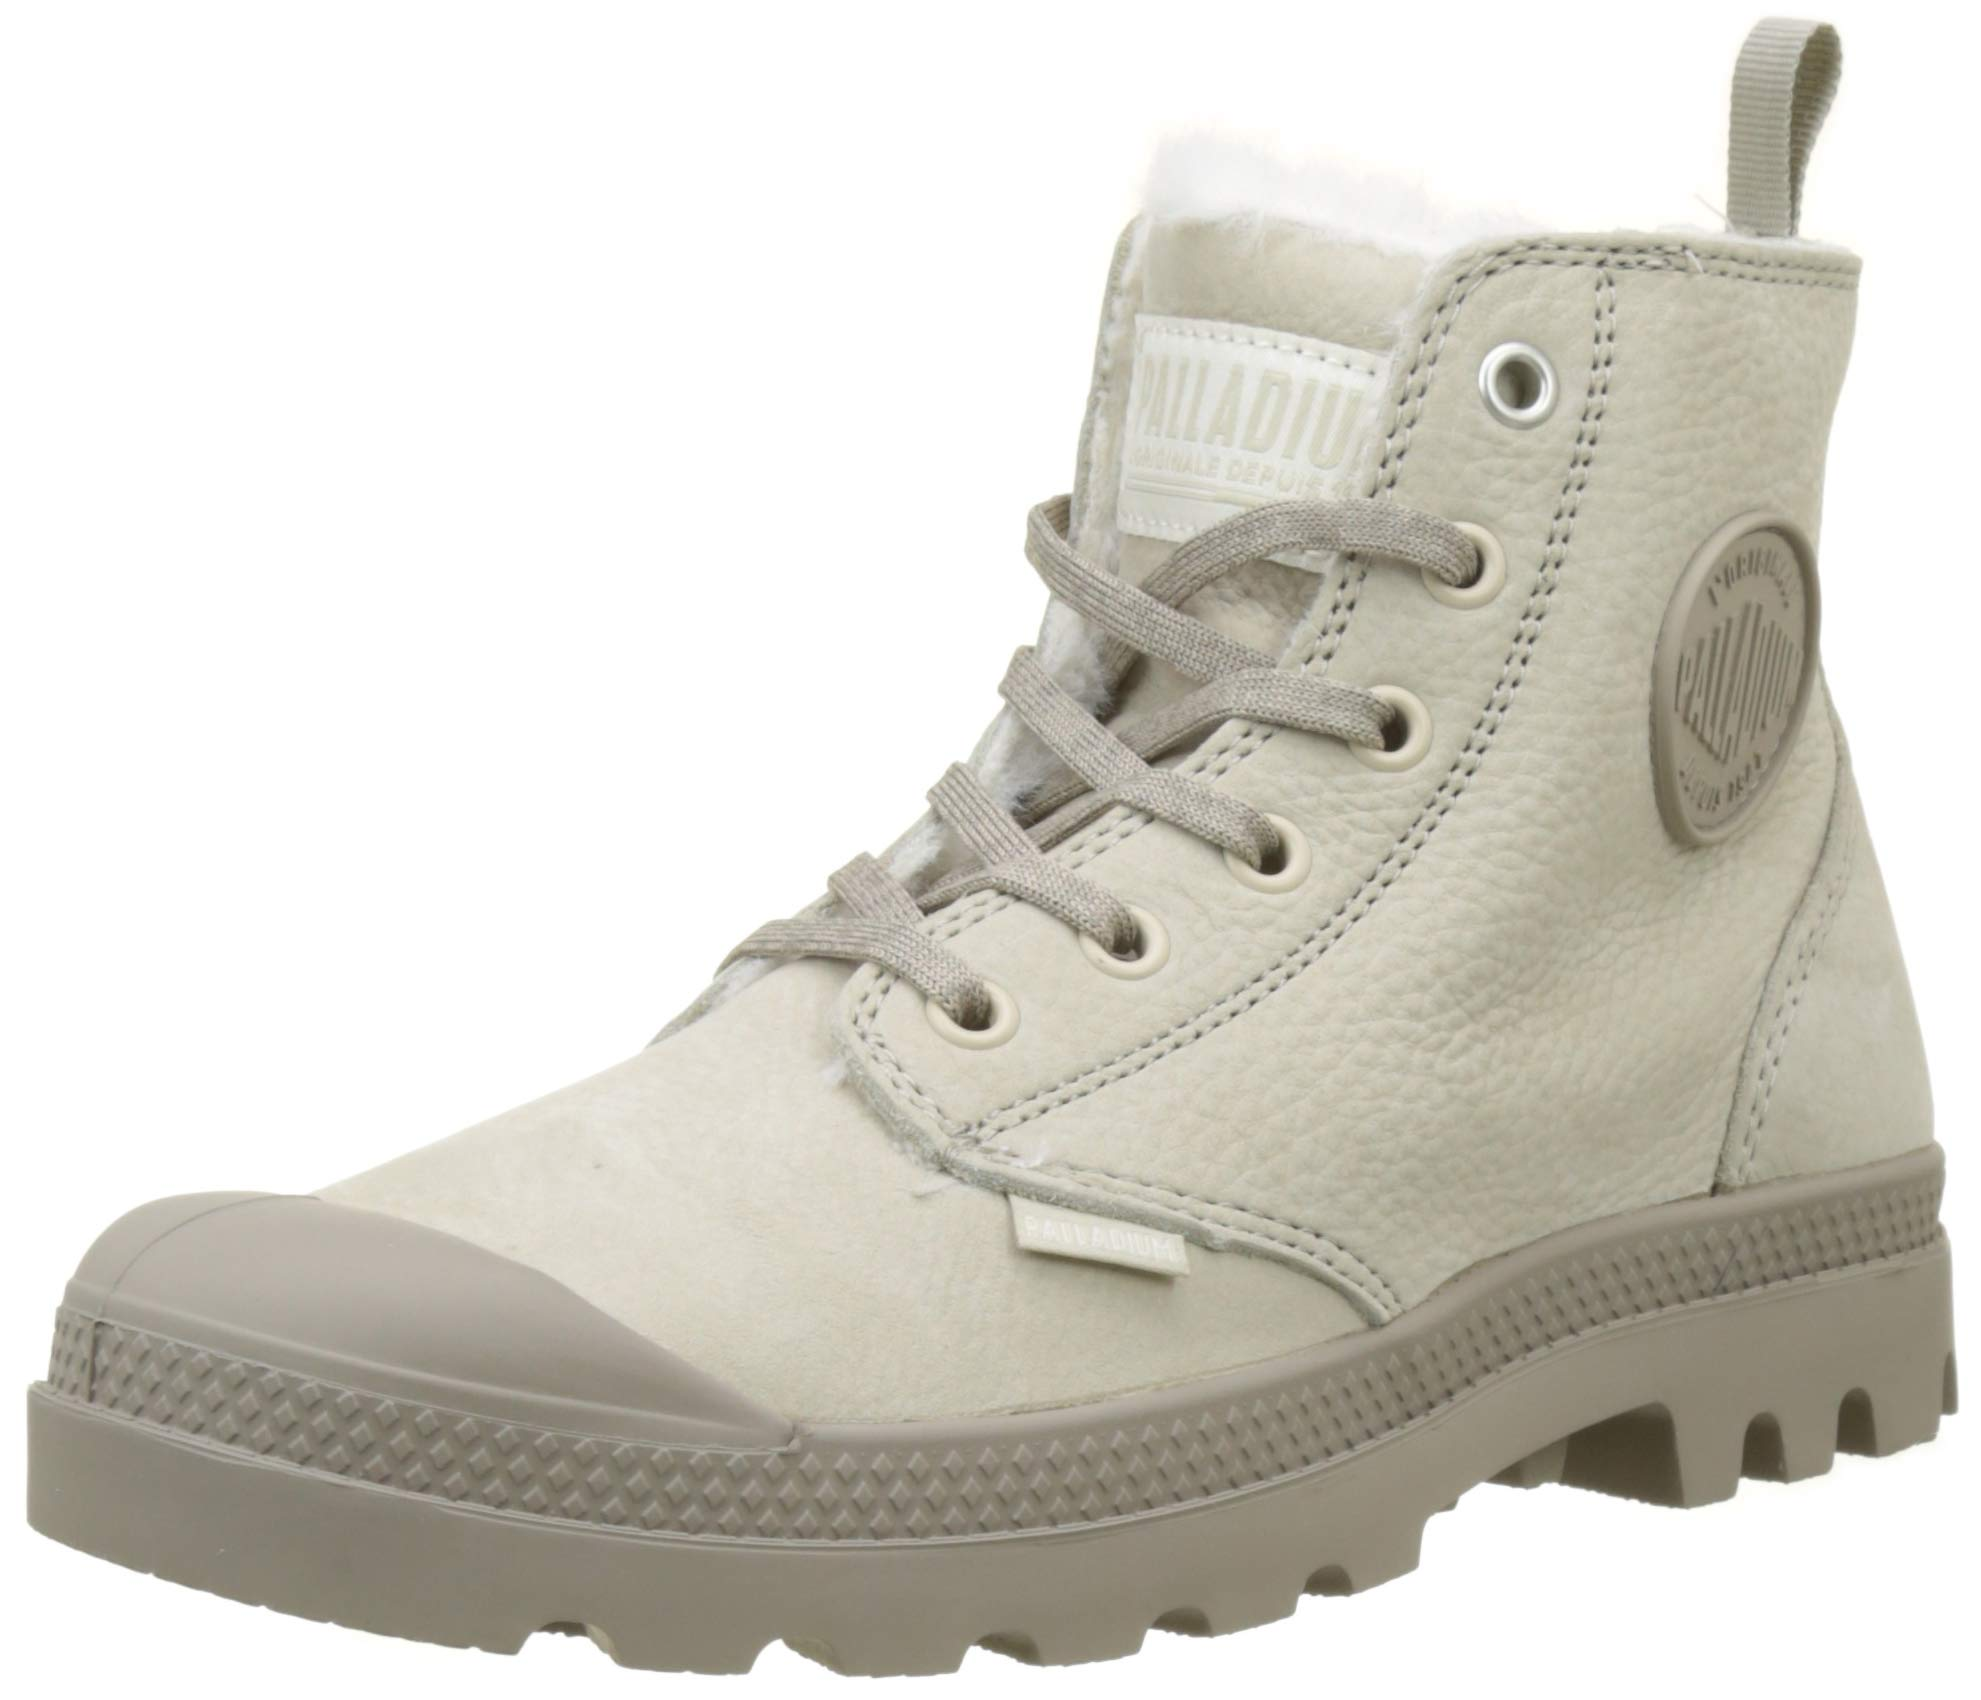 Pampa Palladium WlBotines Hi Zip Grey FemmesÉcrufeather moonrock Eu R0940 LMzjVGqpSU